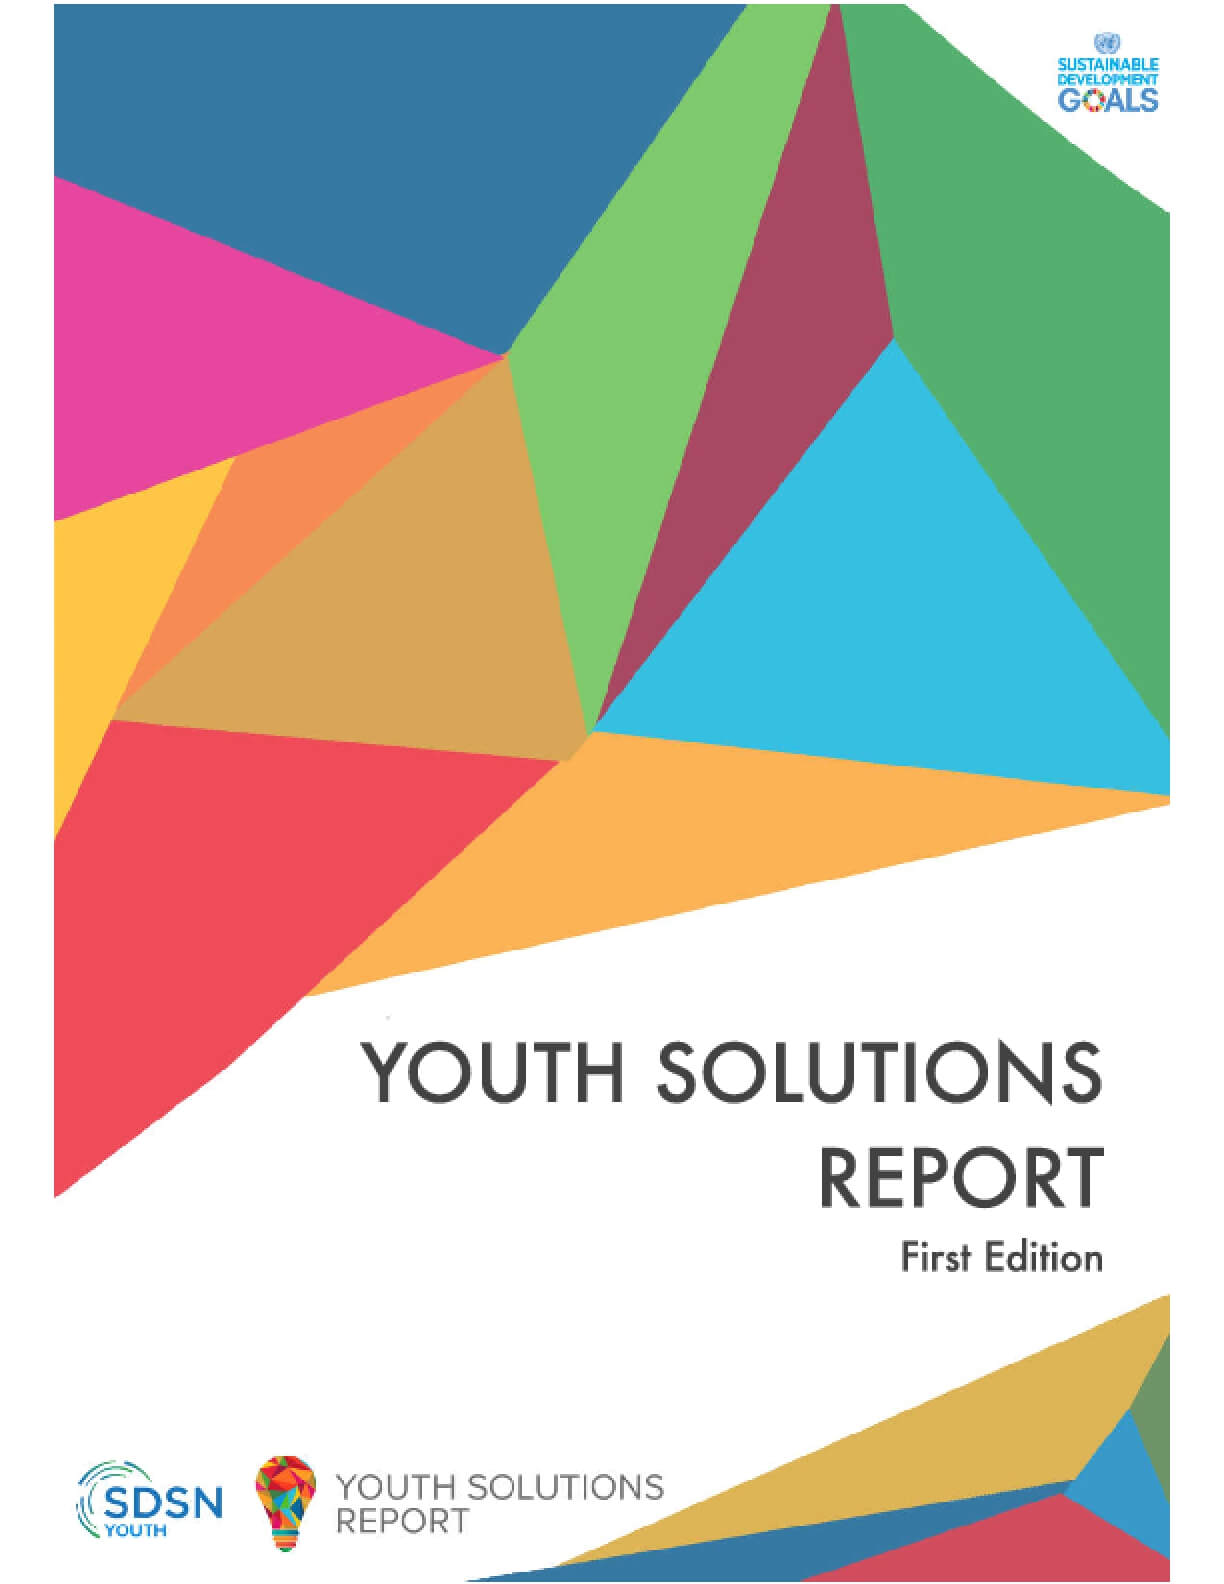 Youth Solutions Report - First Edition